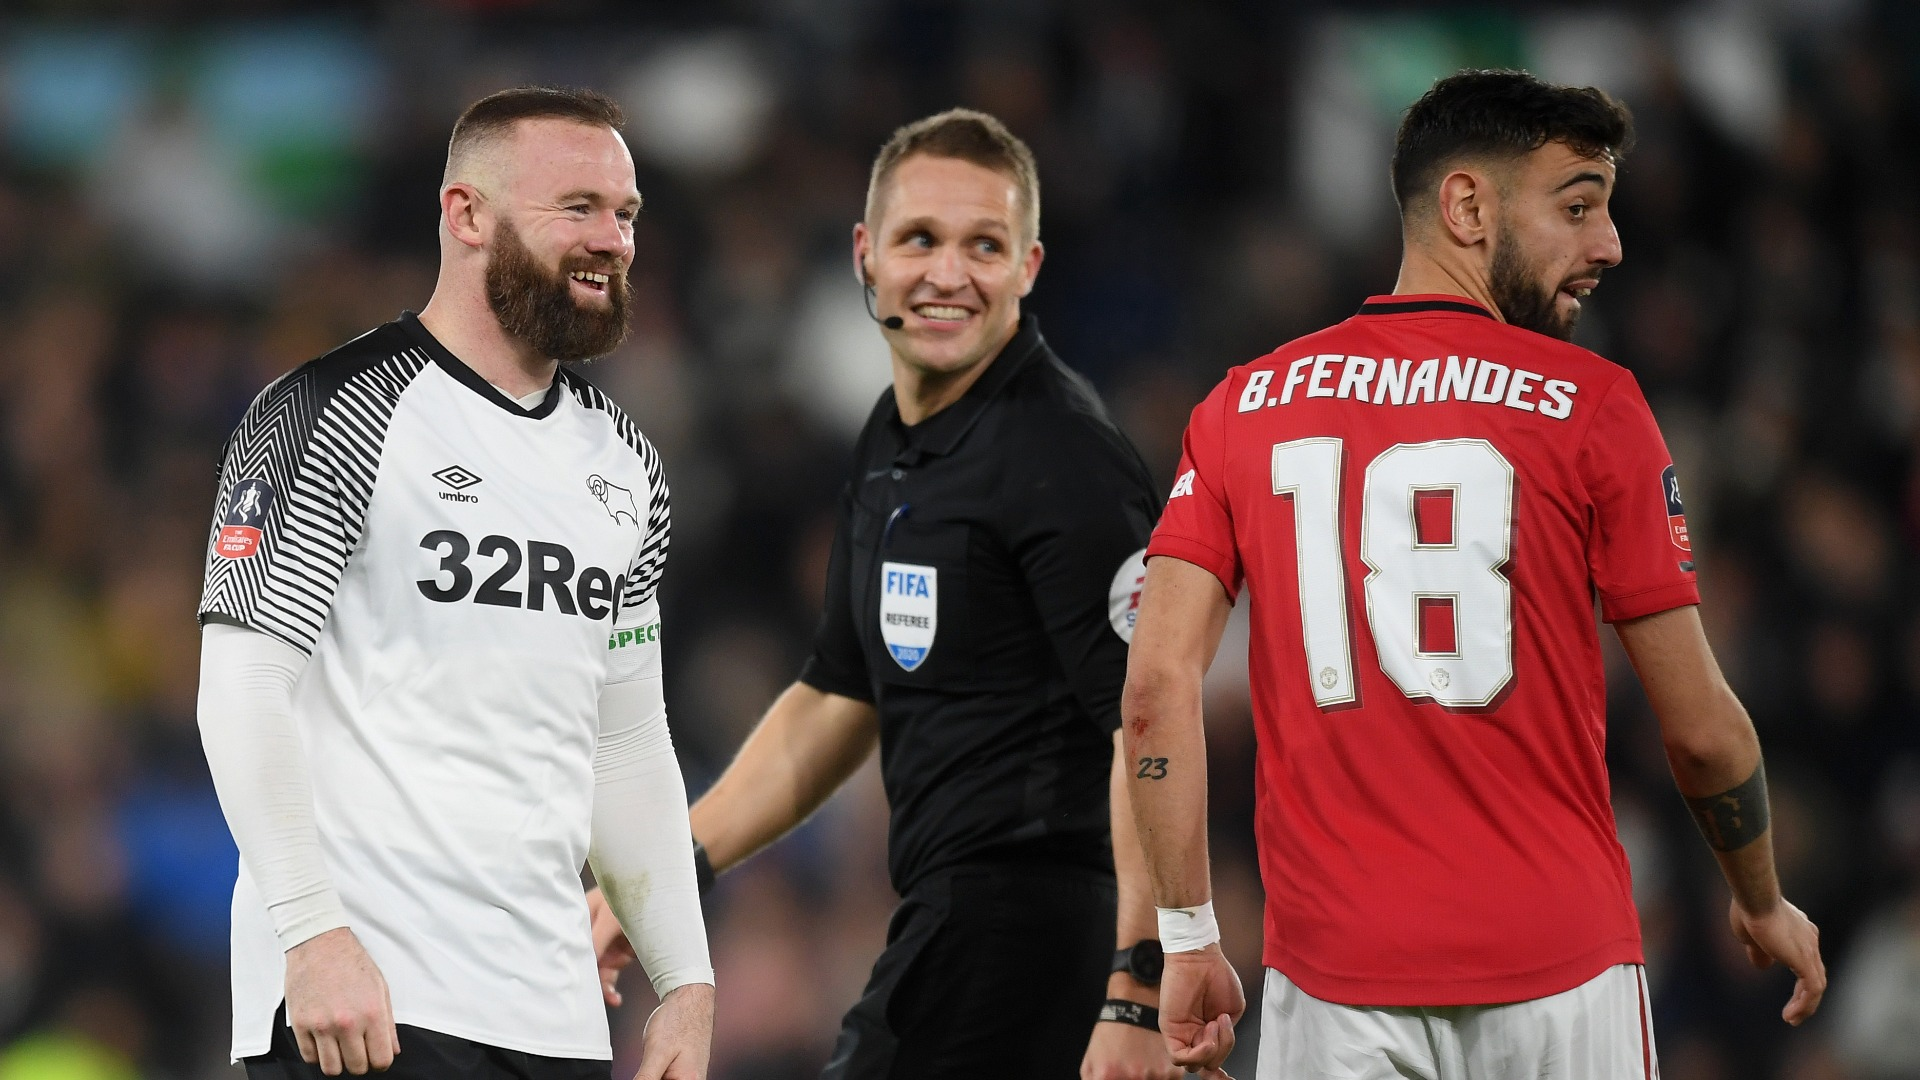 United untroubled as Rooney gets tributes but no triumph at Pride Park